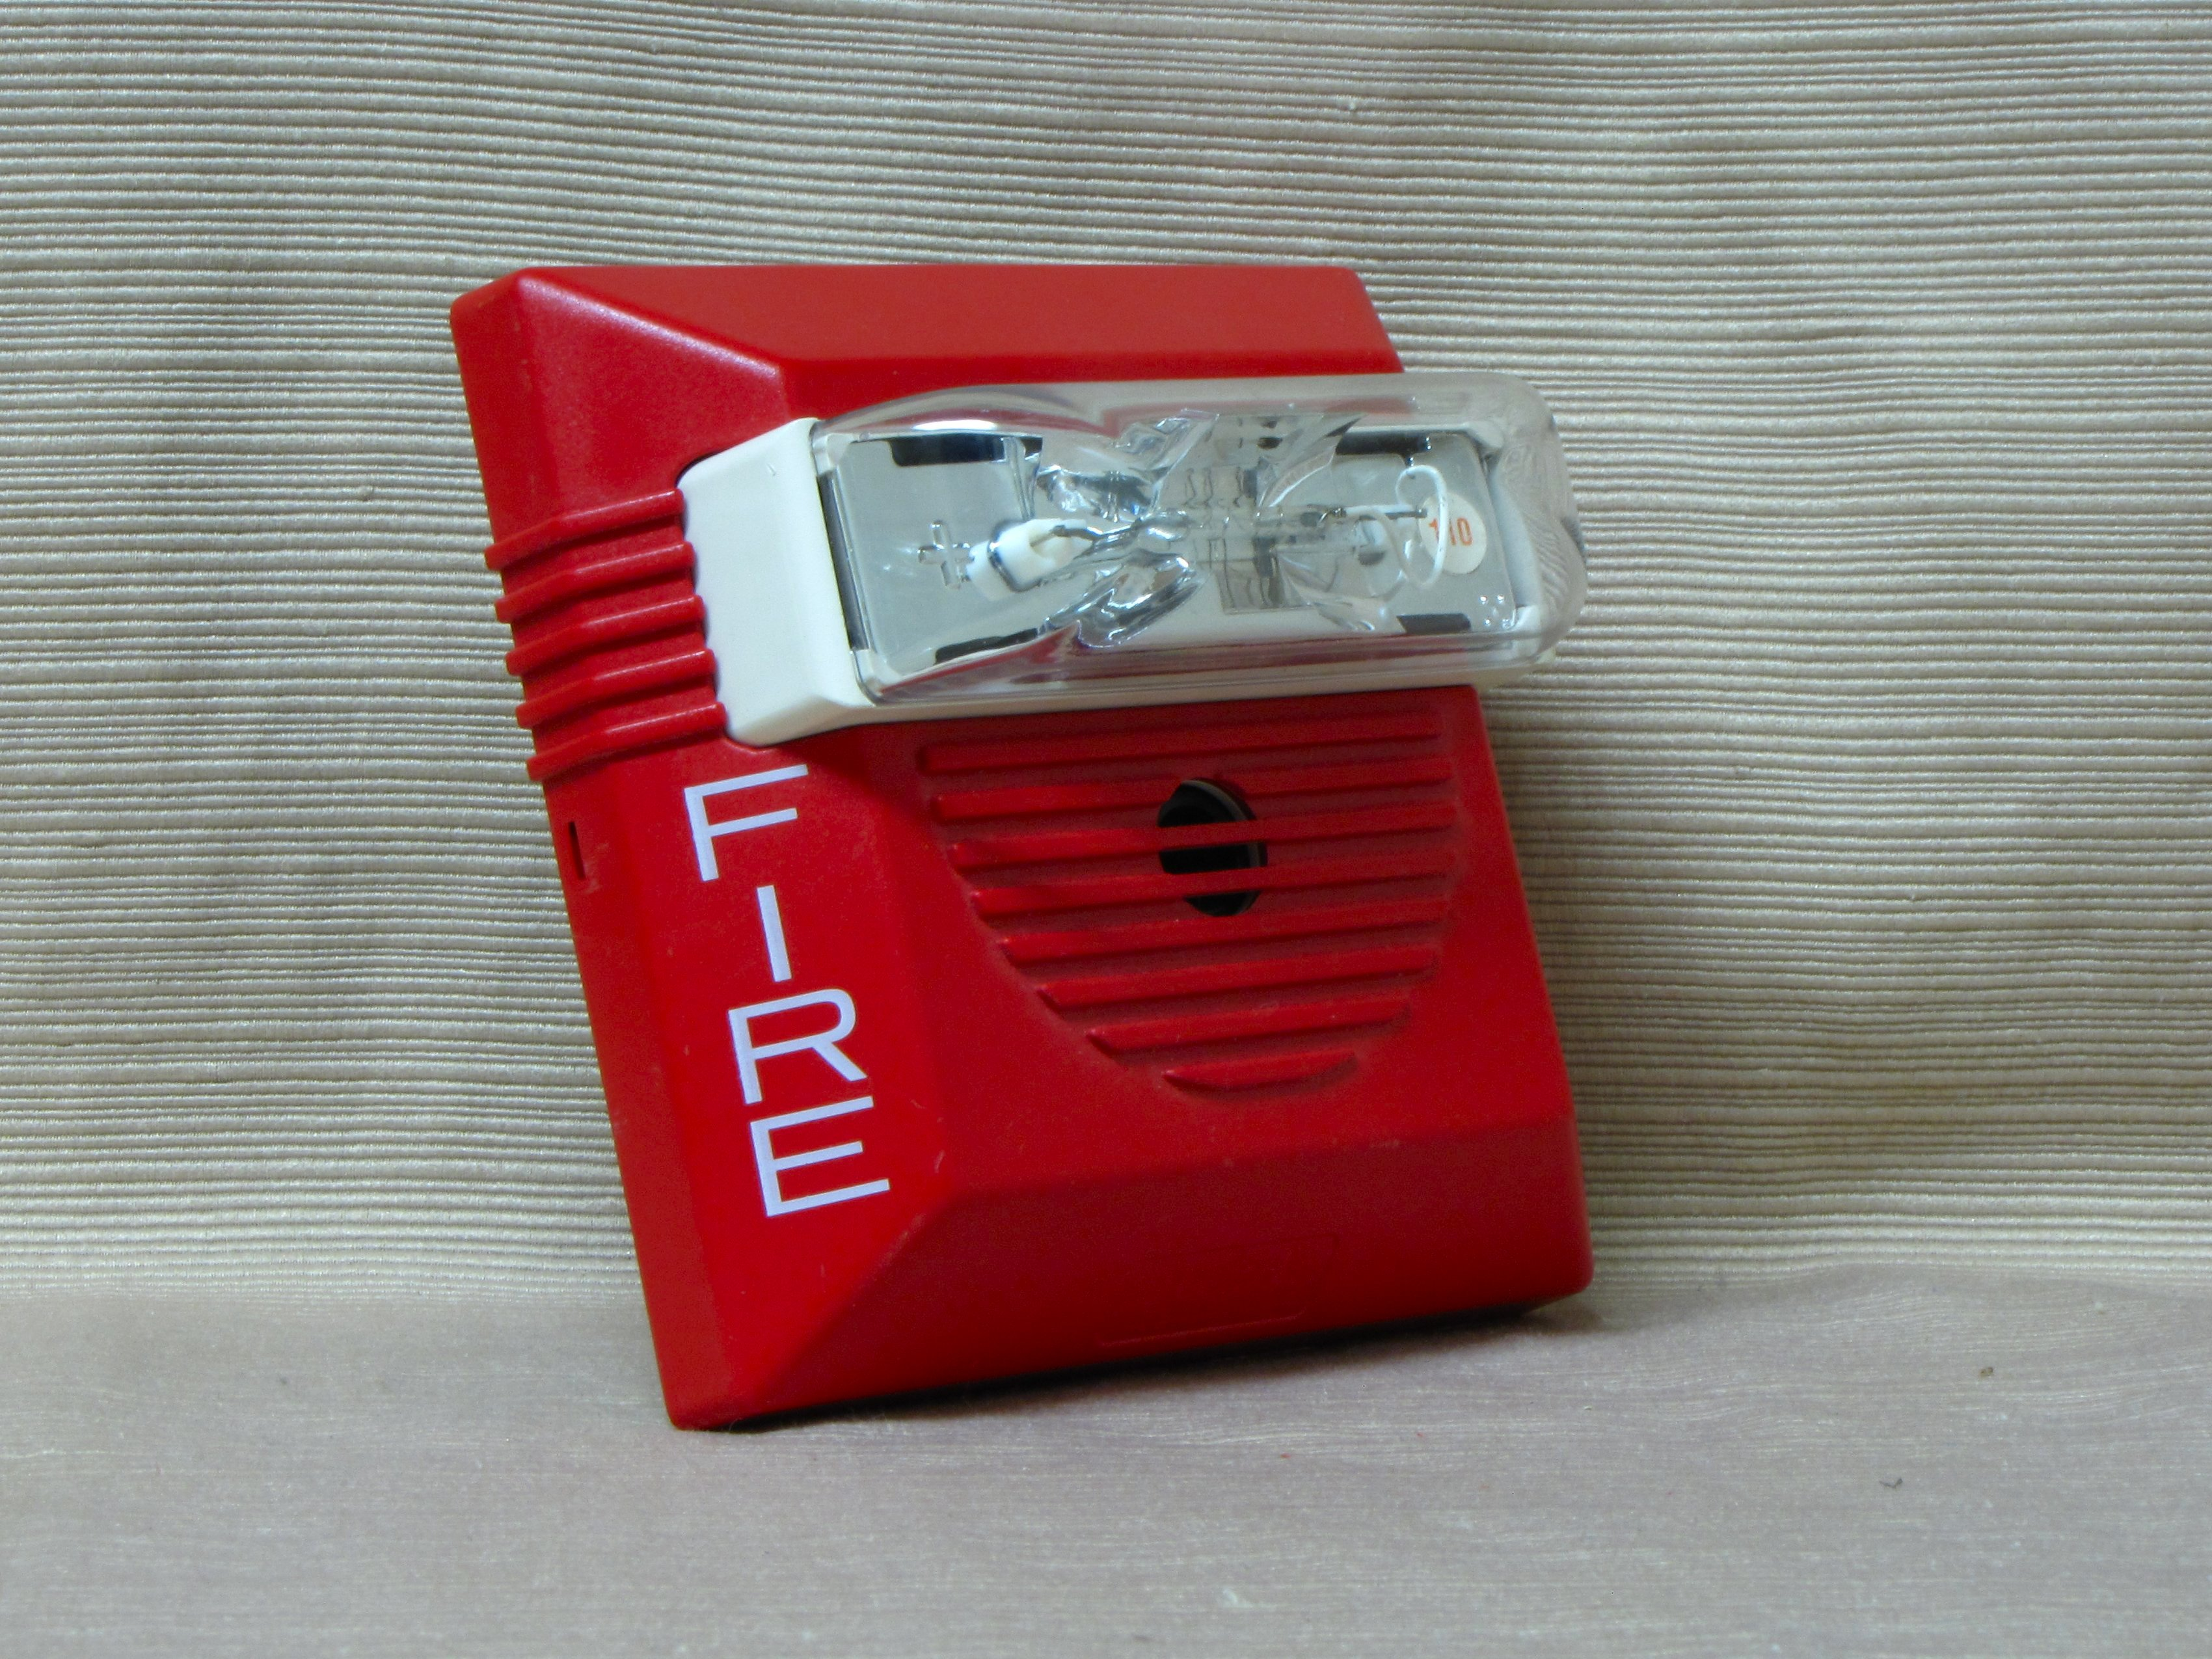 Fire Alarm System Ouput Fire Alarm 60341906288 in addition Wheelock Wst 24 together with Faraday 5516 as well File Fire Alarm Pull Station likewise Simplex 4903 9419. on fire alarm horn strobe